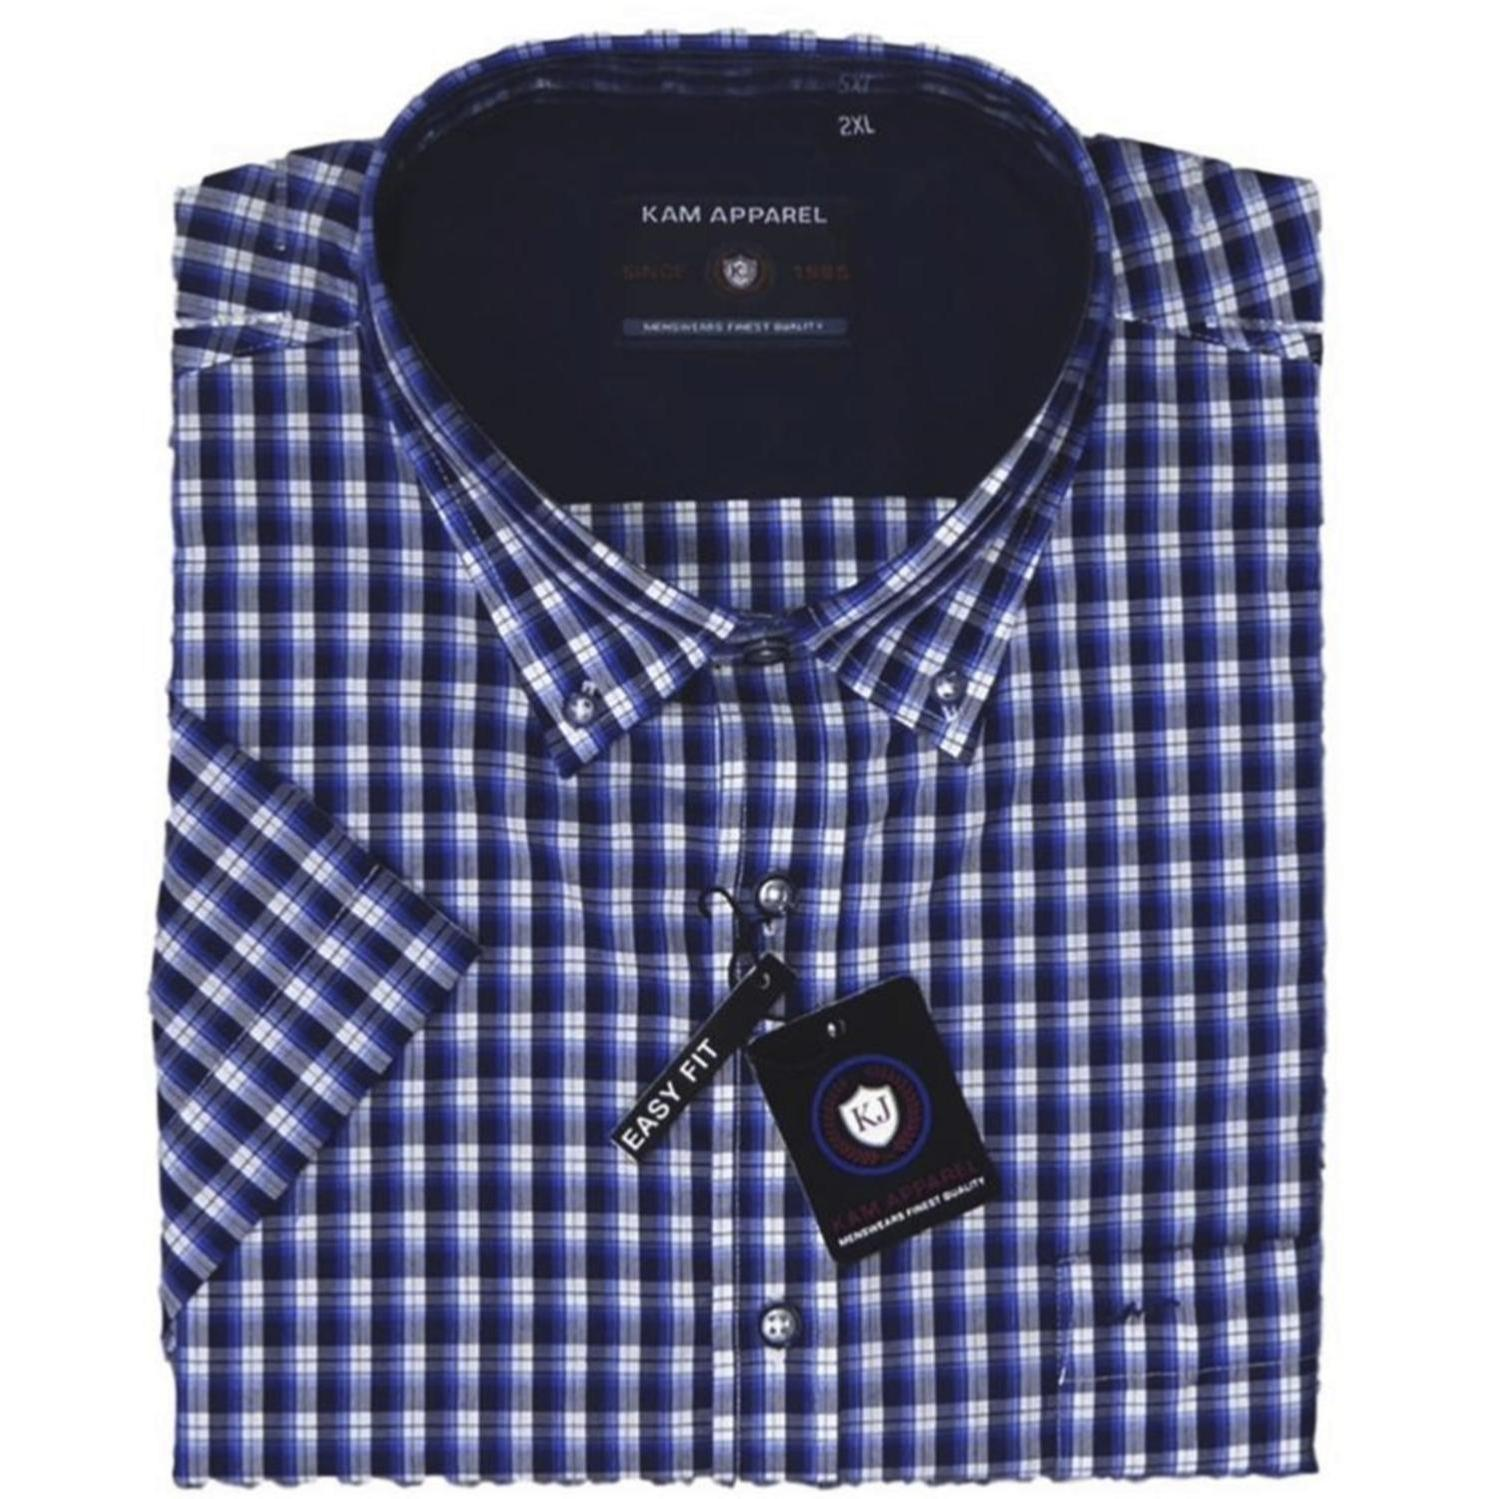 EX-DISPLAY - KAM Classic Check Short Sleeve Casual Shirt BLUE/NAVY 2 XL